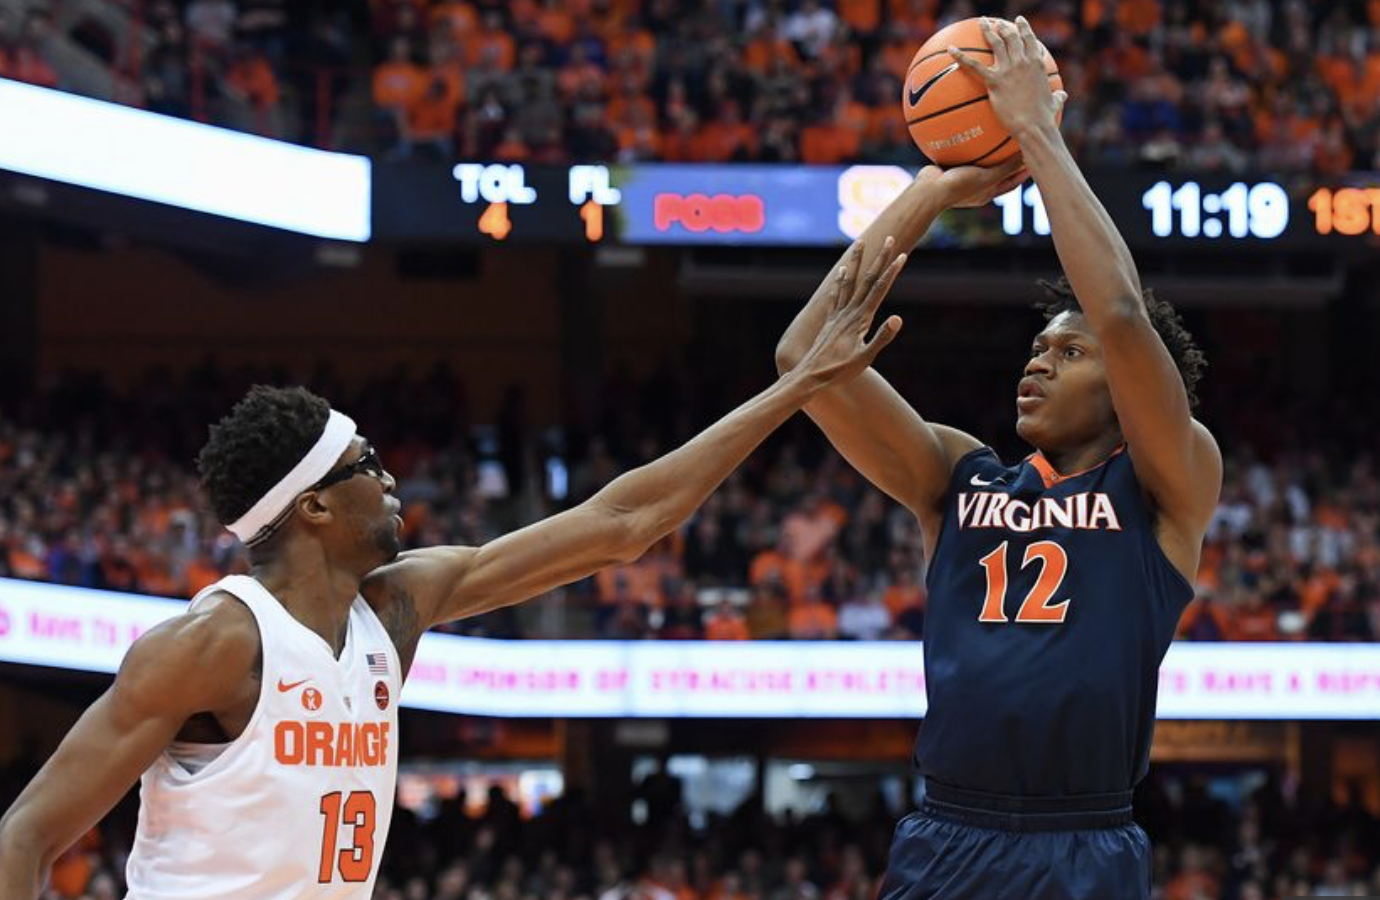 A Bittersweet Bite Out Of The Orange's Blowout Loss To